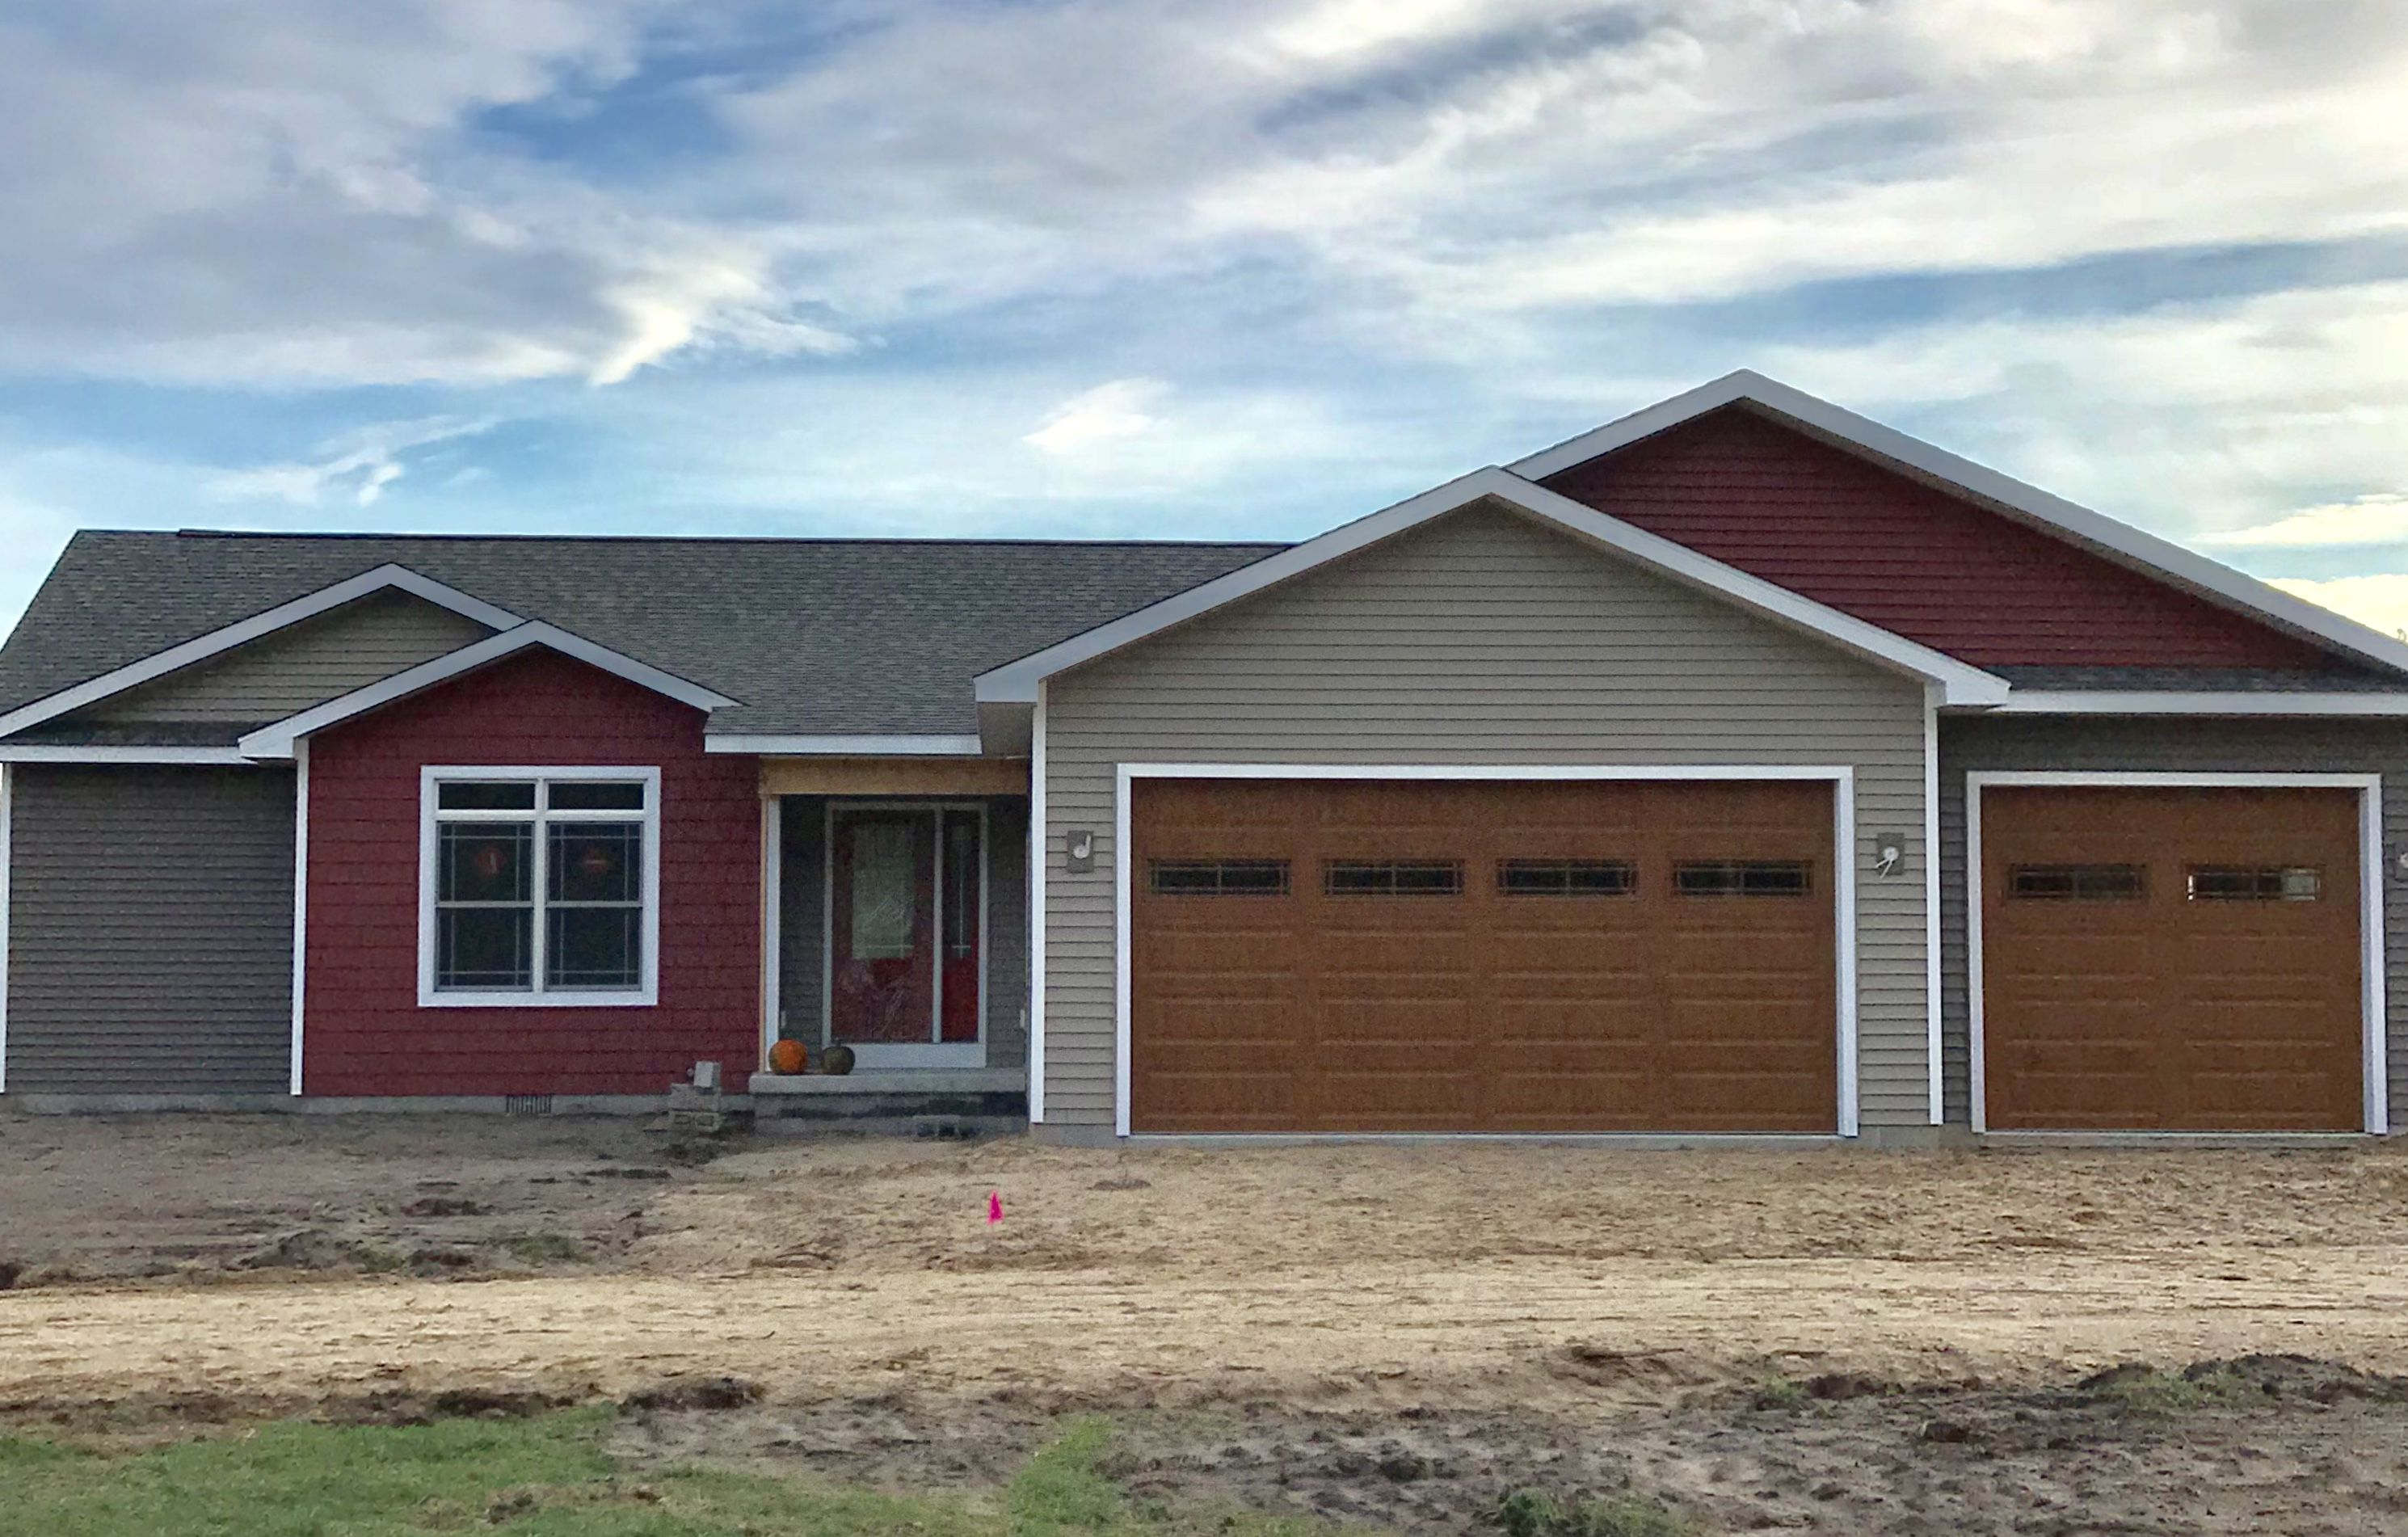 Ranch House Multiple Siding Colors Montana Suede Pebble Stone Clay Russet Red House Exterior Ranch House Siding Colors